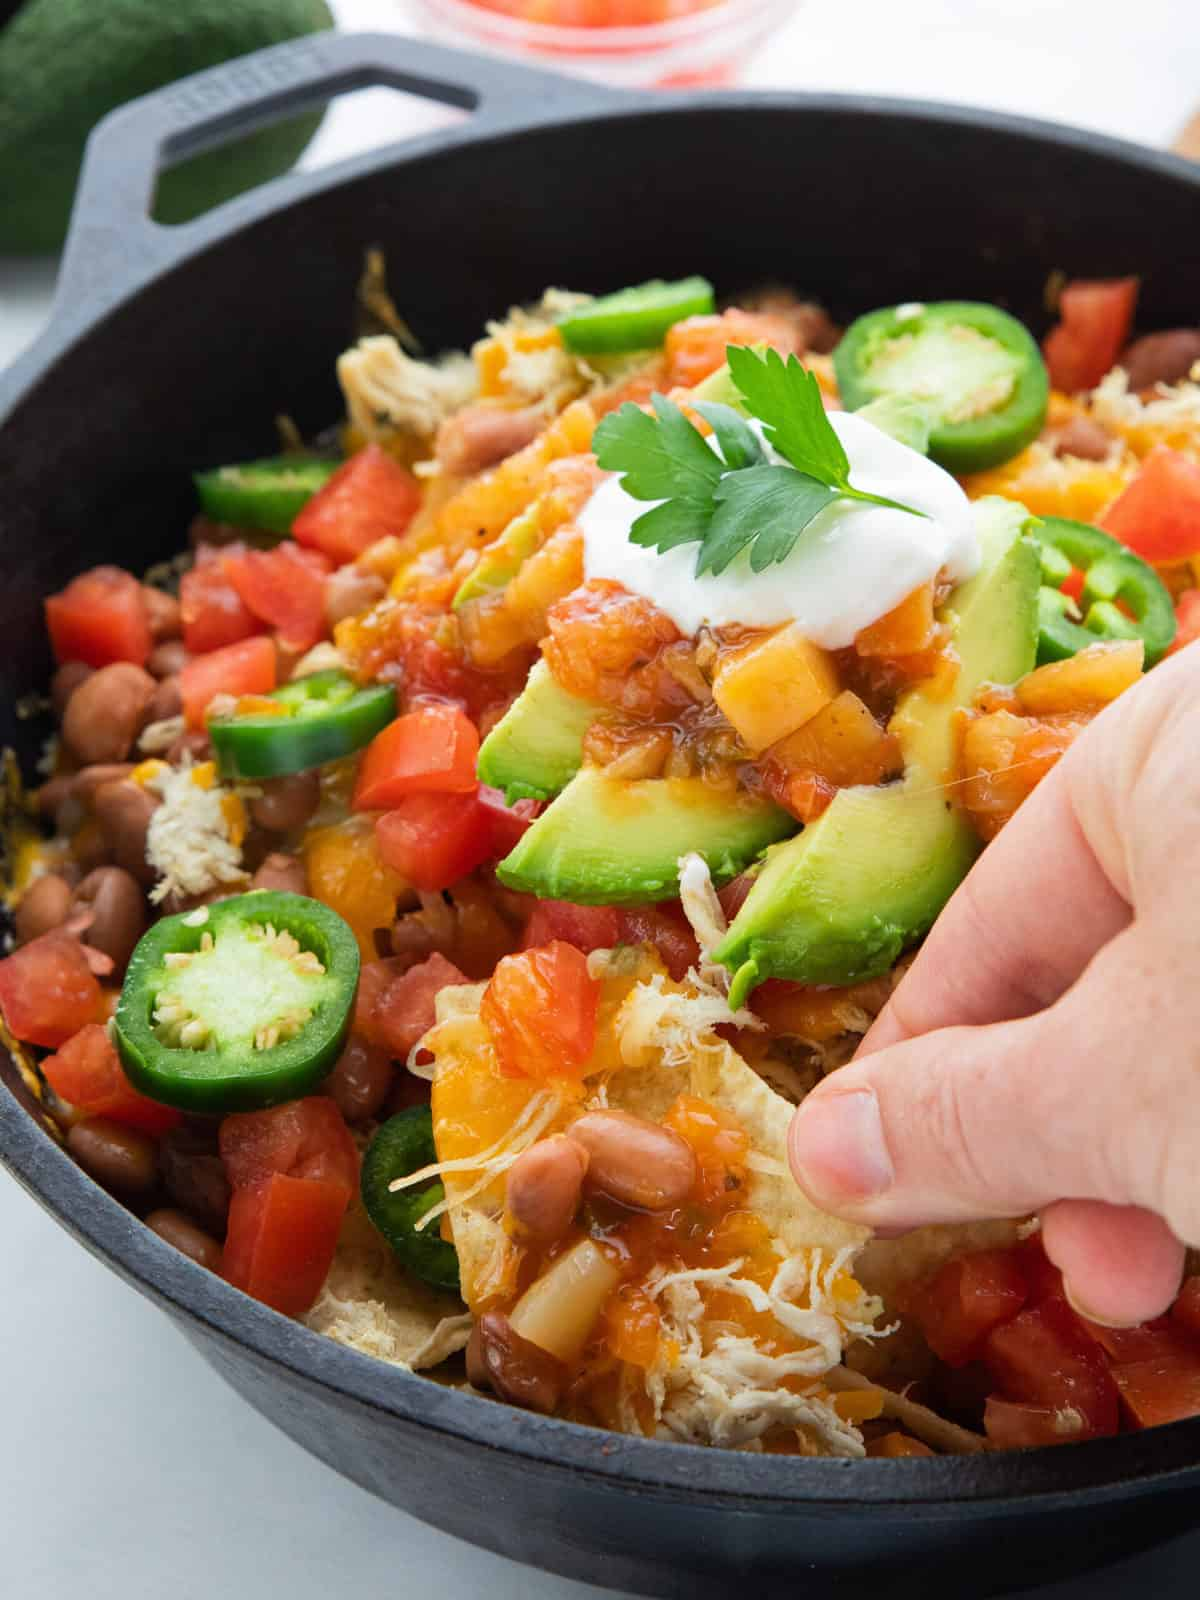 Shredded Chicken Skillet Nachos showing nachos in a cast iron skillet with a hand scooping up a serving.